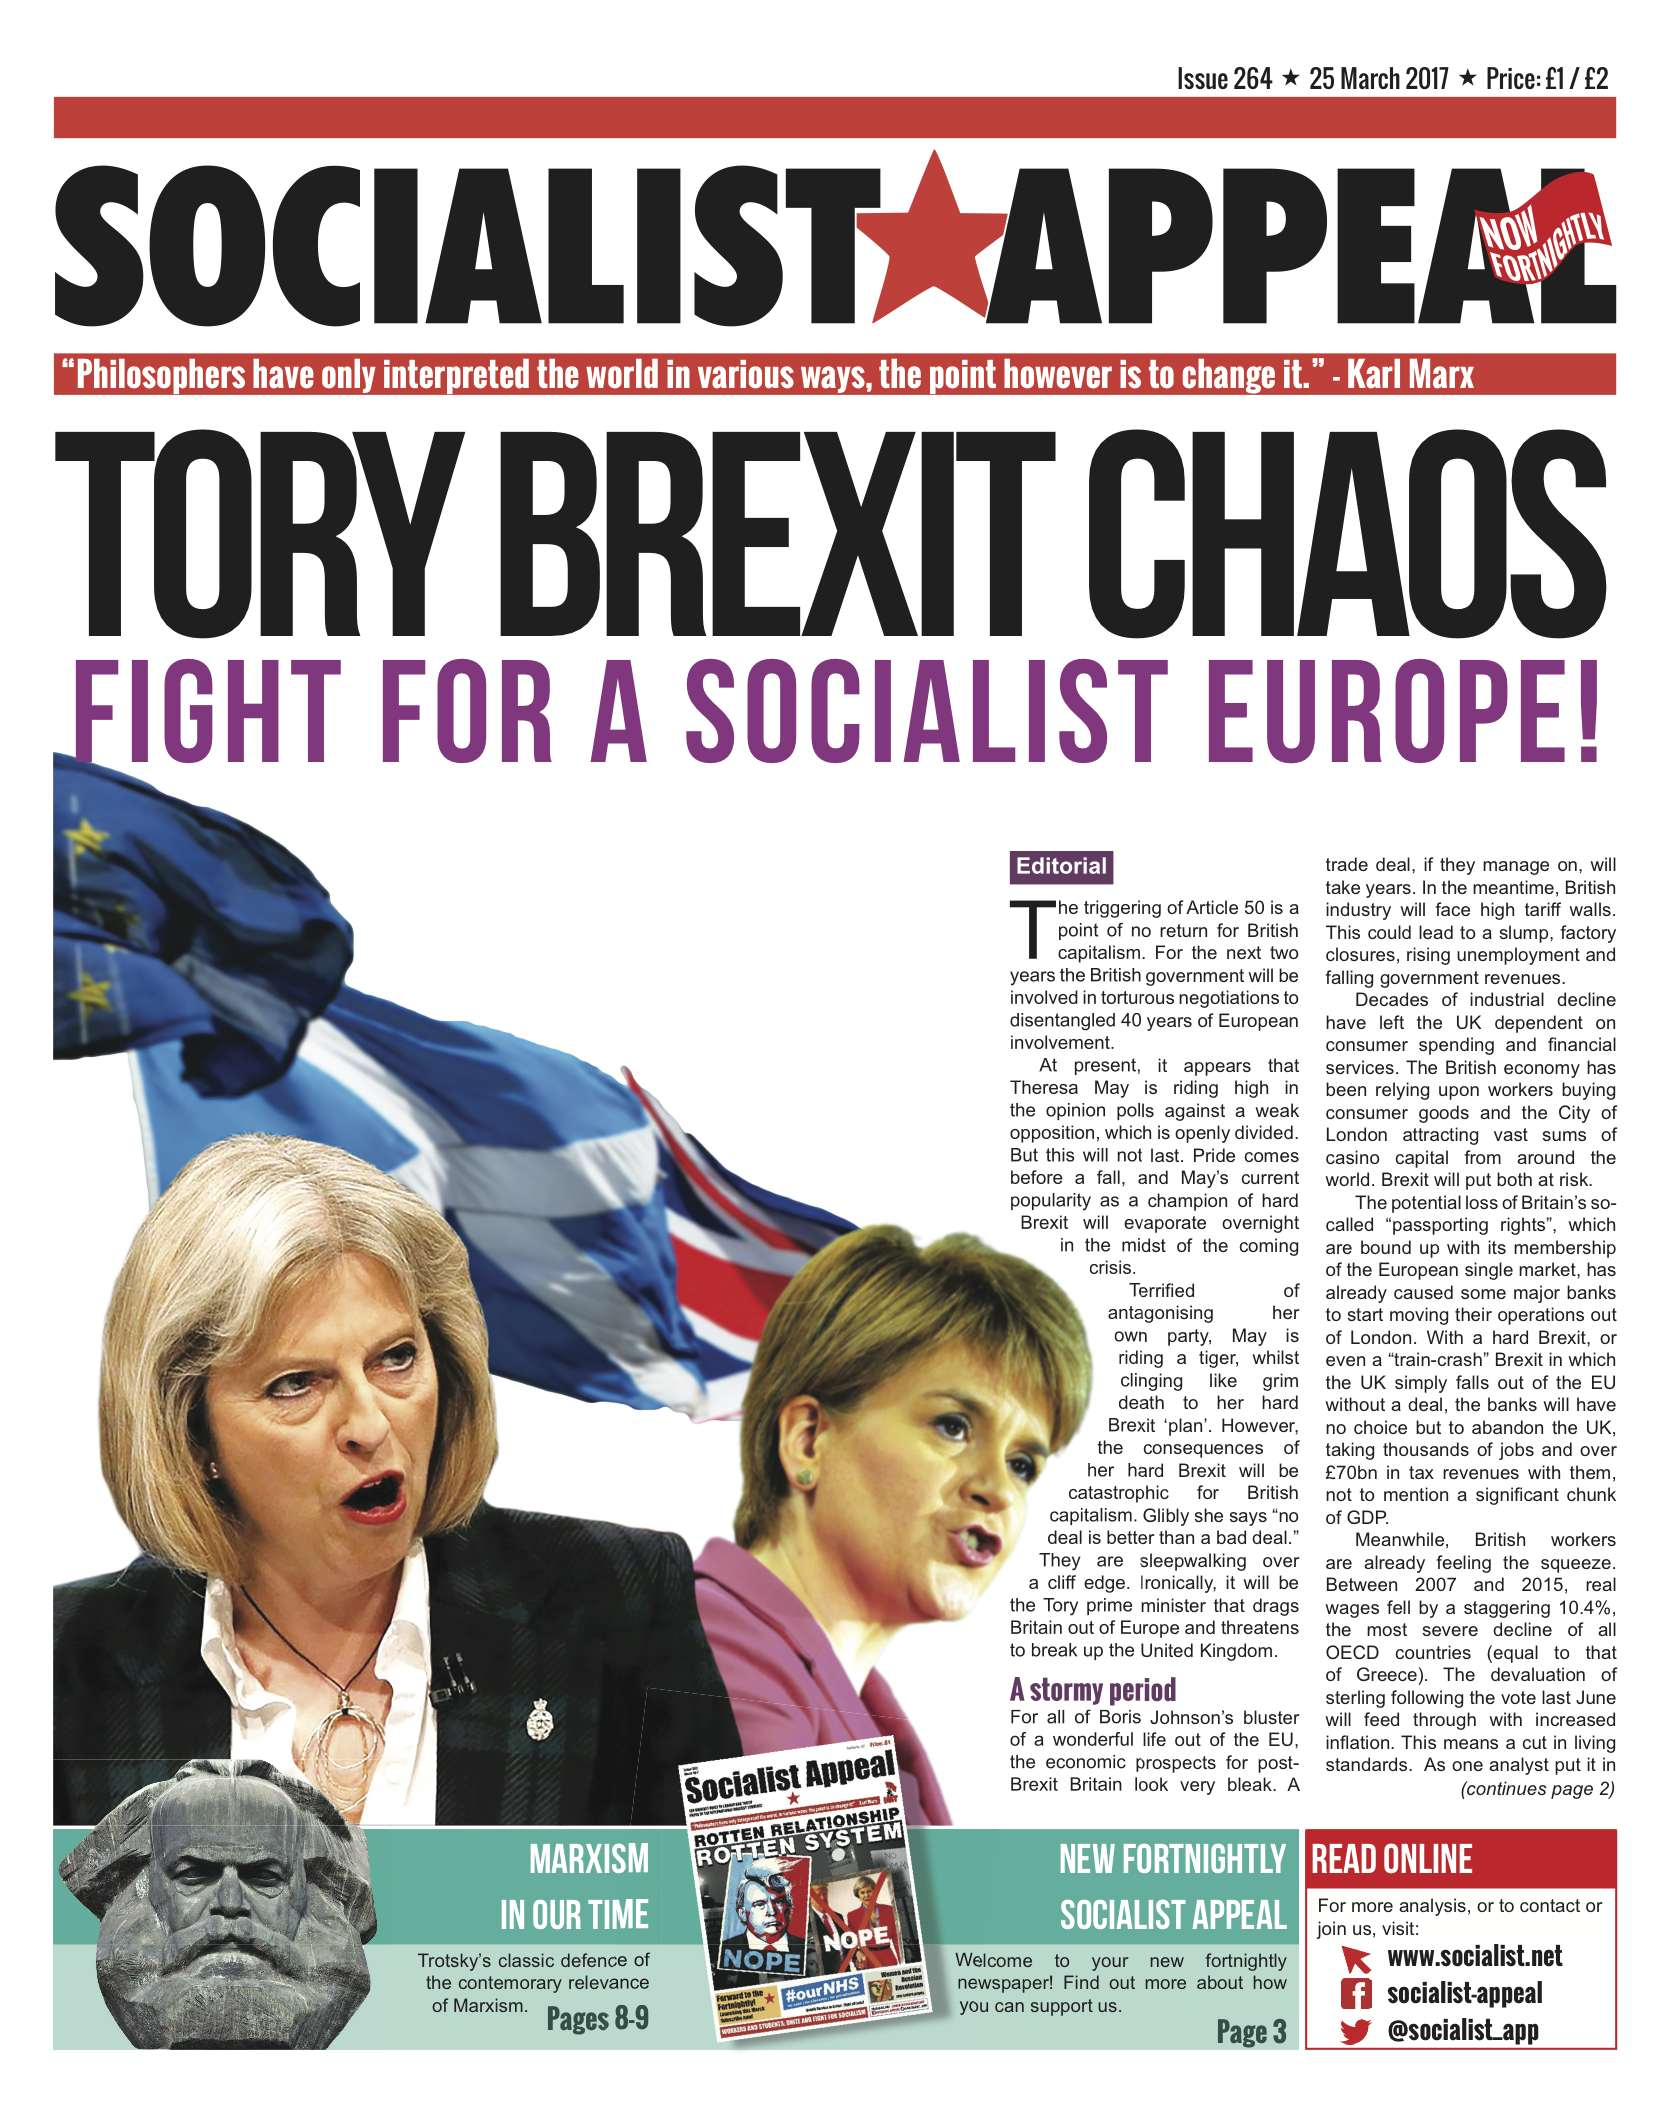 Fortnightly Socialist Appeal hits campuses